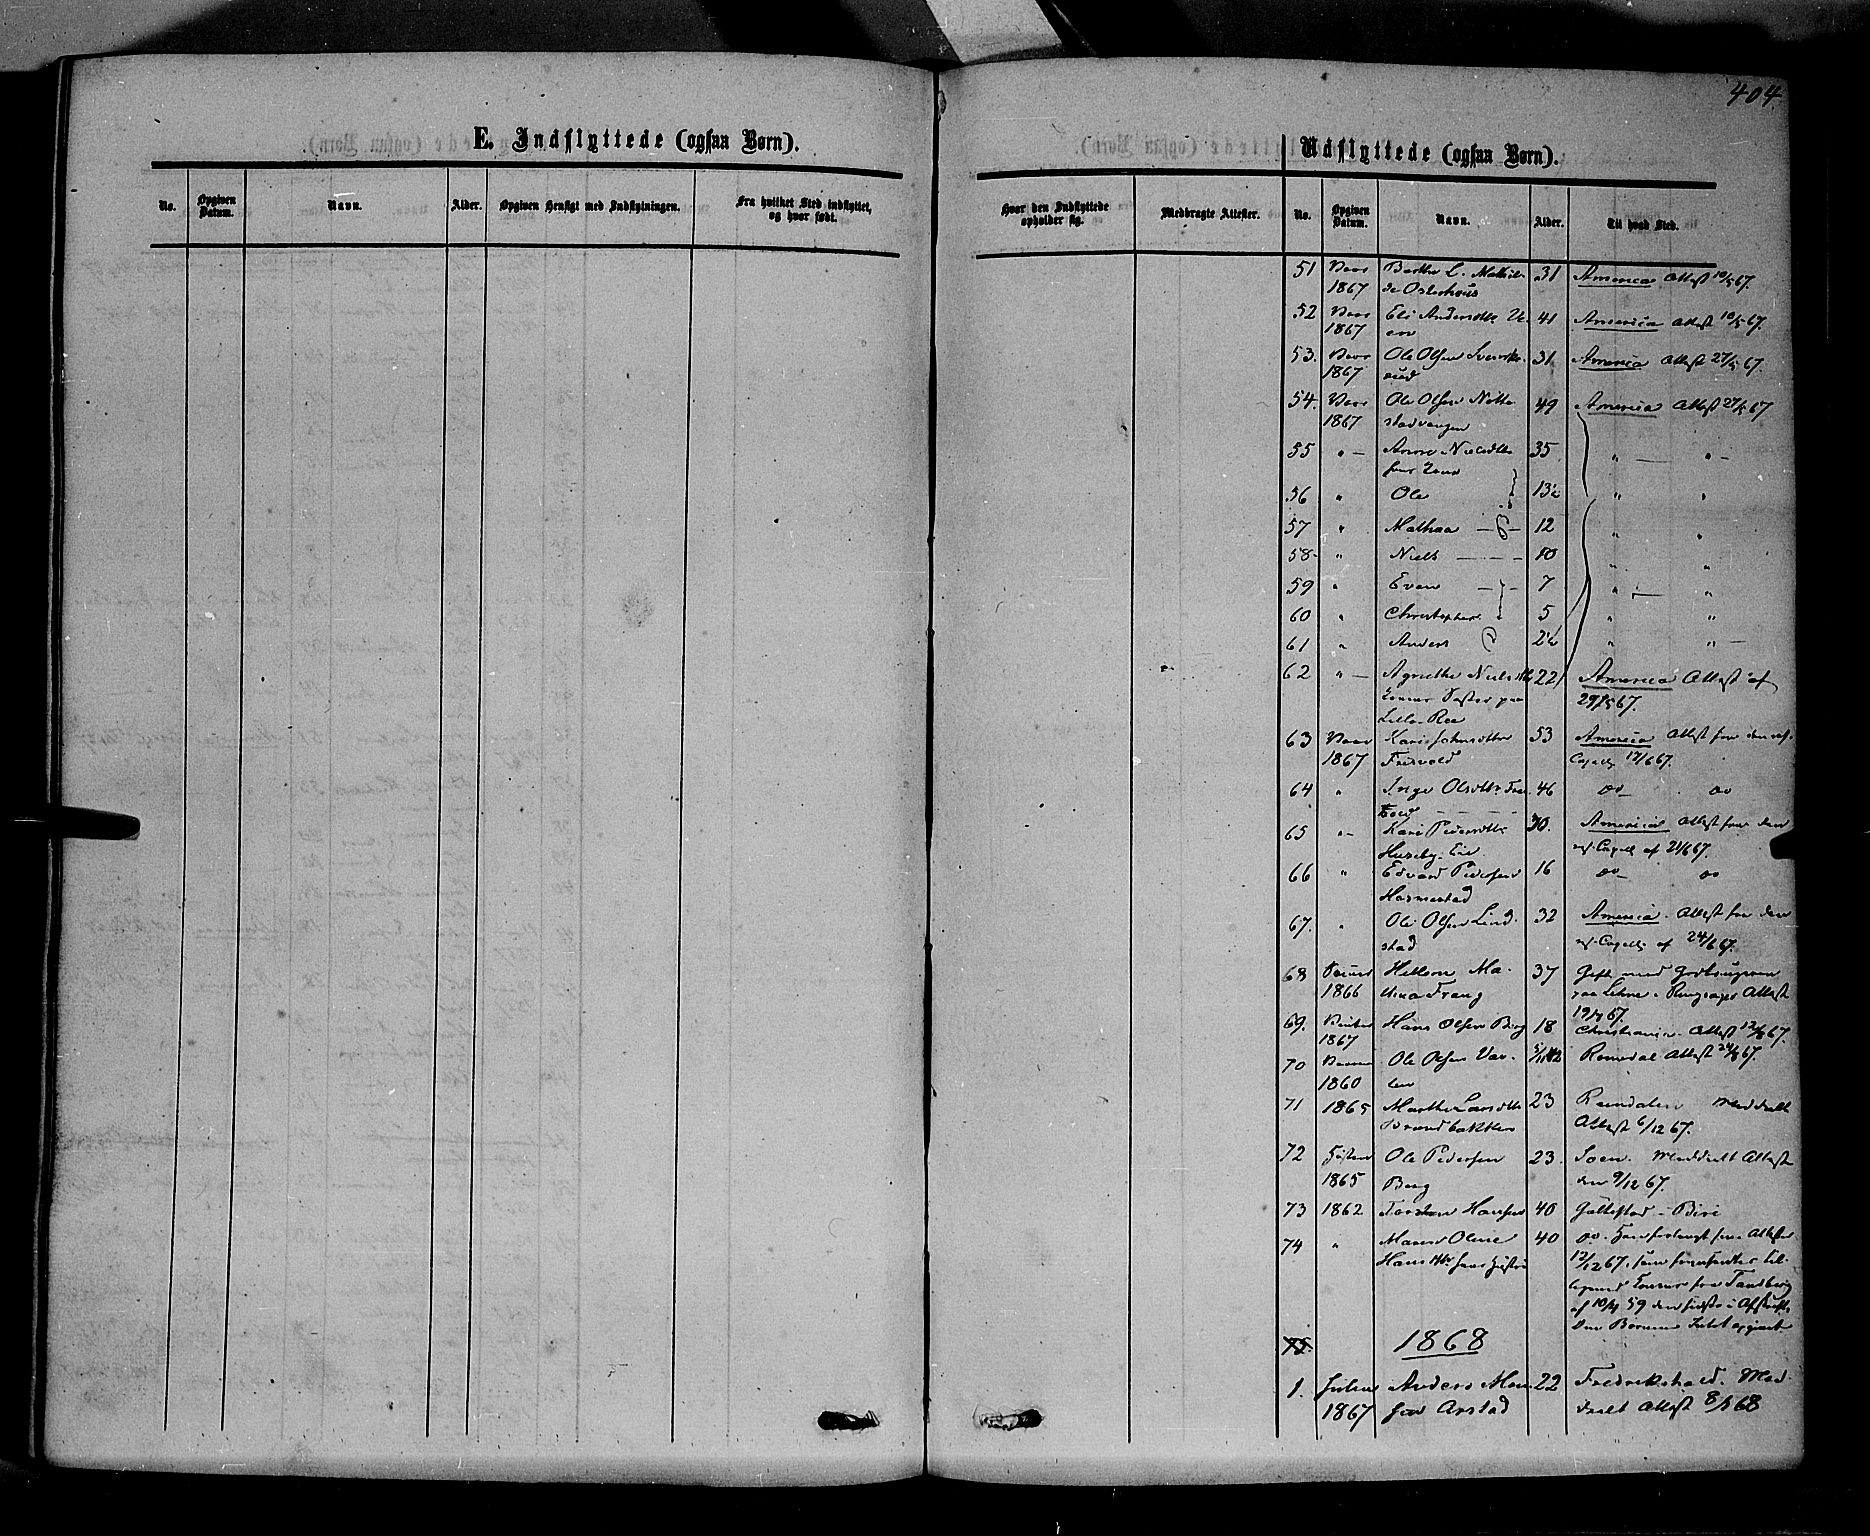 SAH, Stange prestekontor, K/L0013: Parish register (official) no. 13, 1862-1879, p. 404